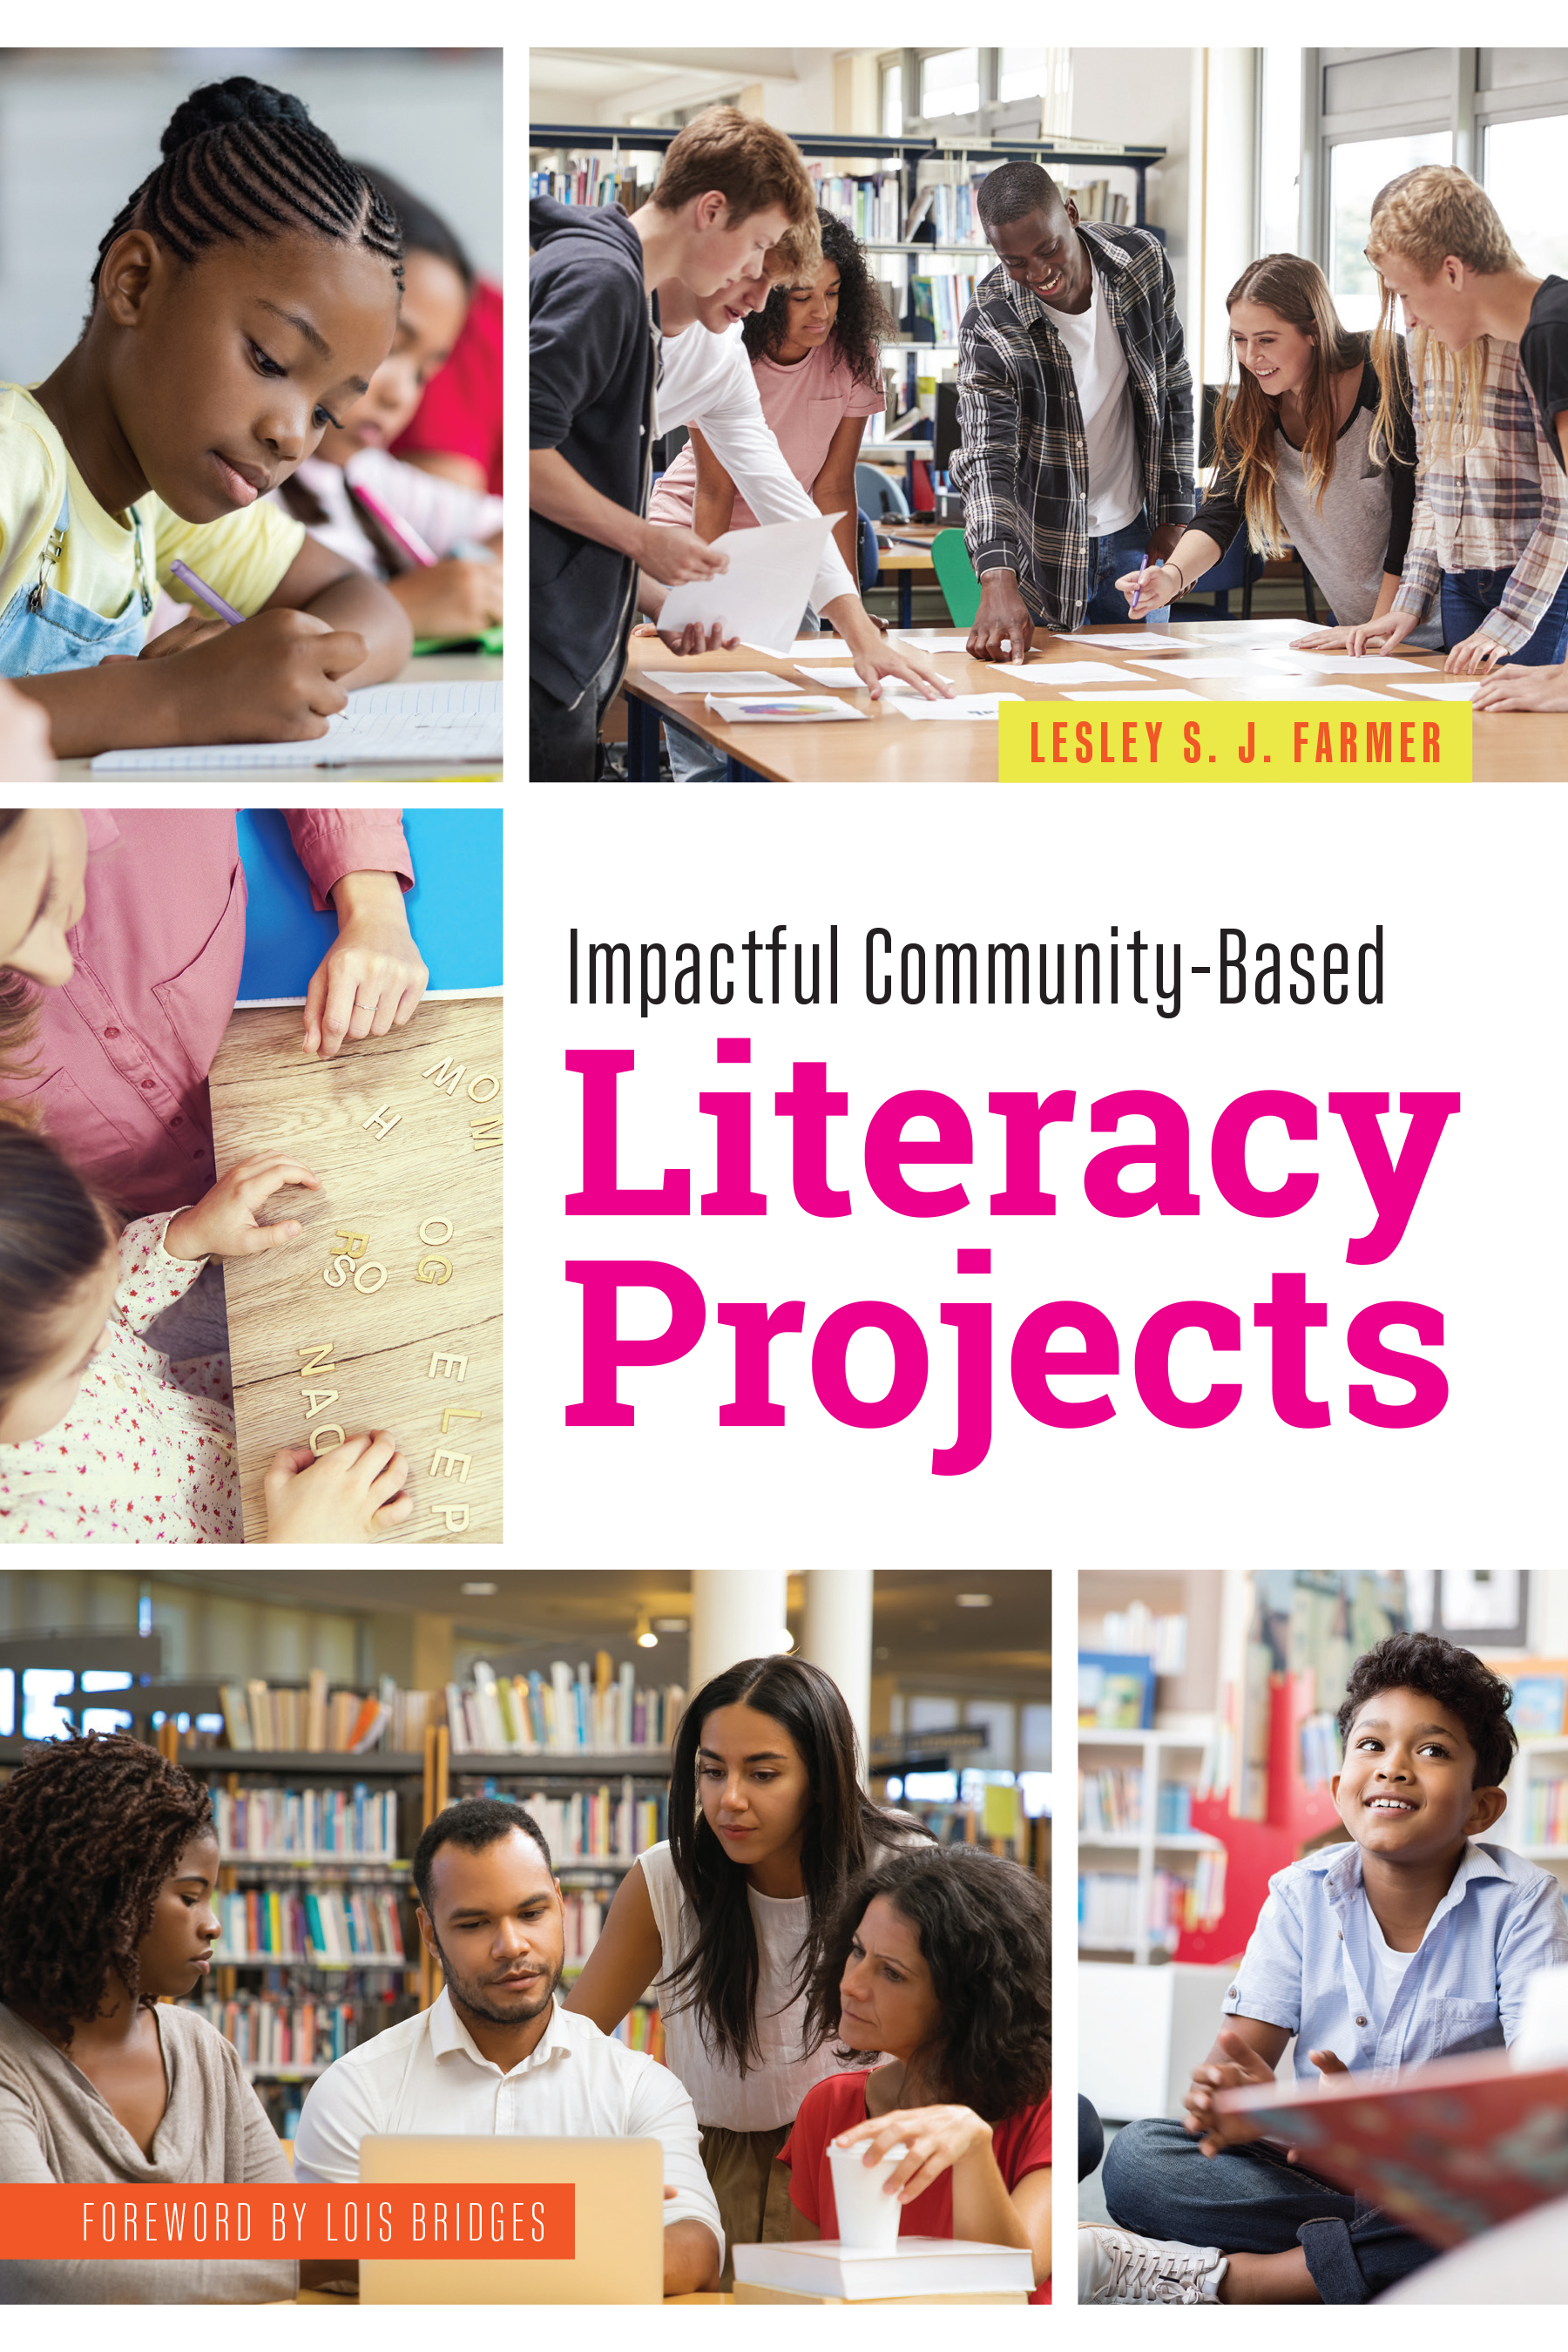 Image for Impactful Community-Based Literacy Projects